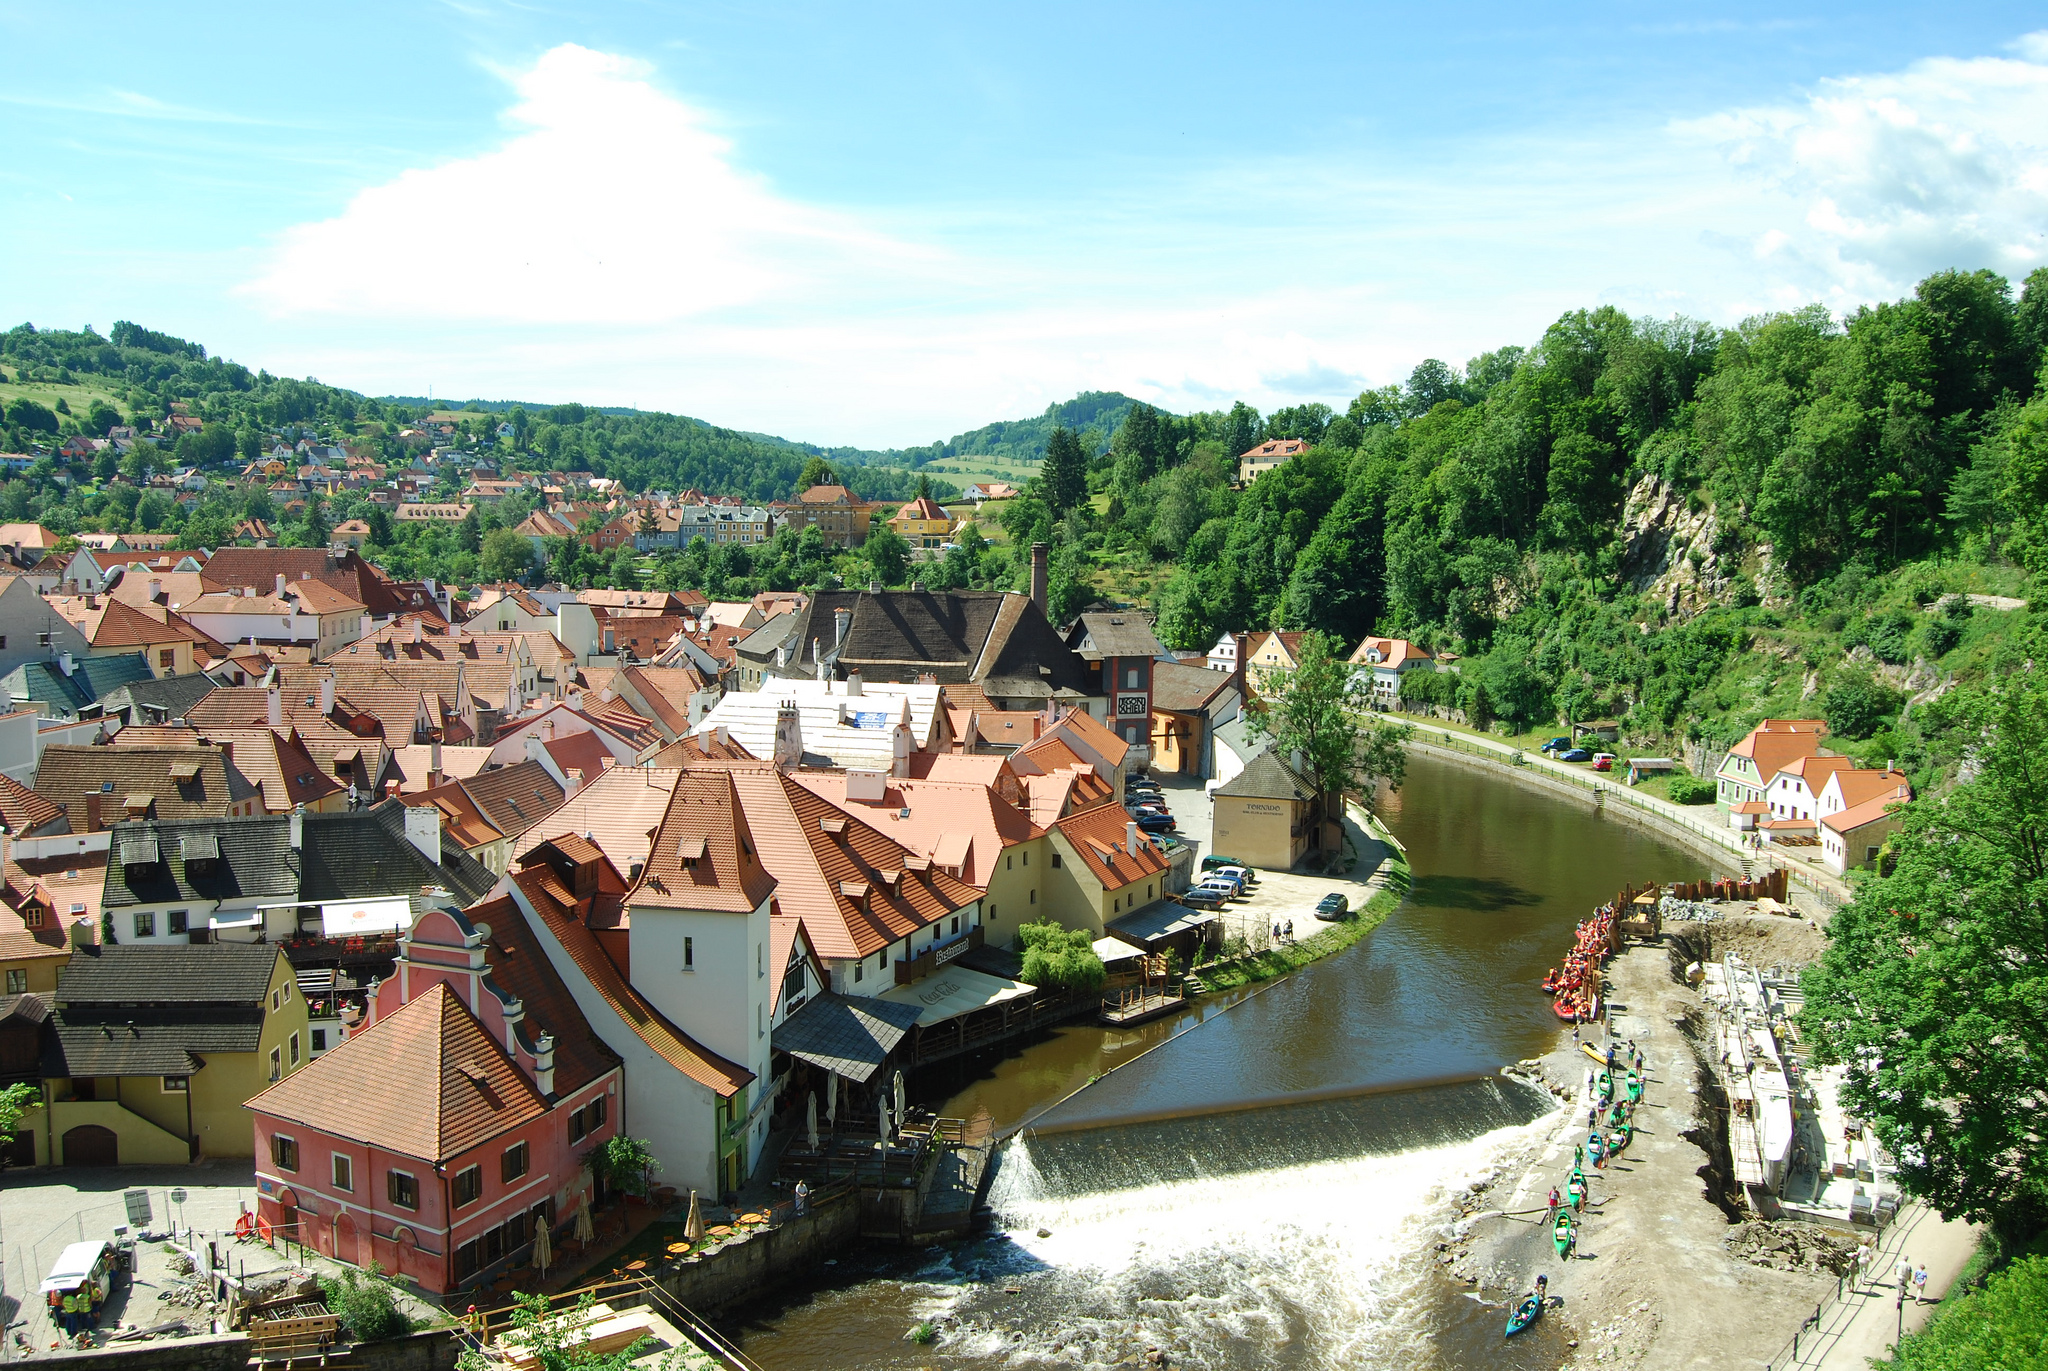 Cesky Krumlov is one of the most picturesque towns in Europe